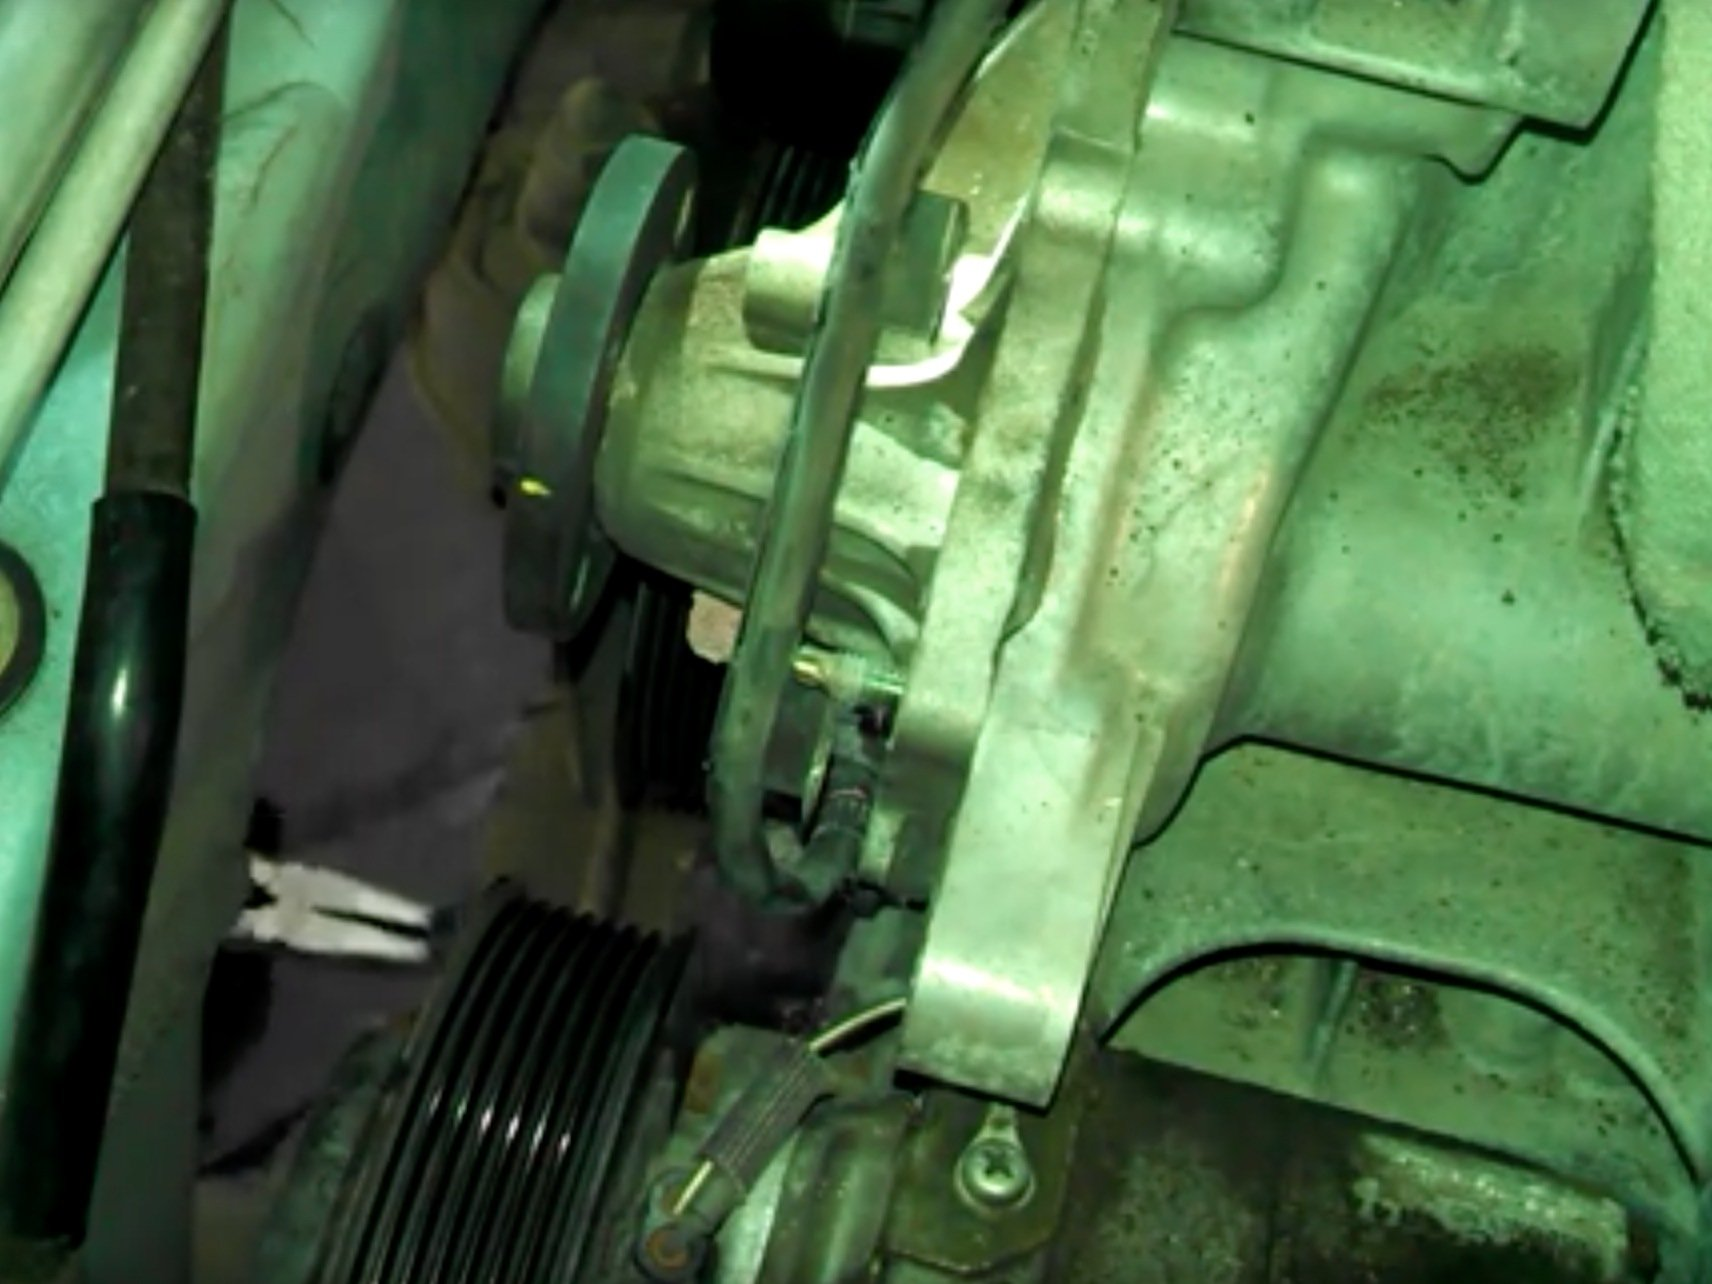 toyota 3 4 v6 engine water pump replacement diagrams 2002 2006 toyota camry water pump replacement  2002  2003  2004  2002 2006 toyota camry water pump